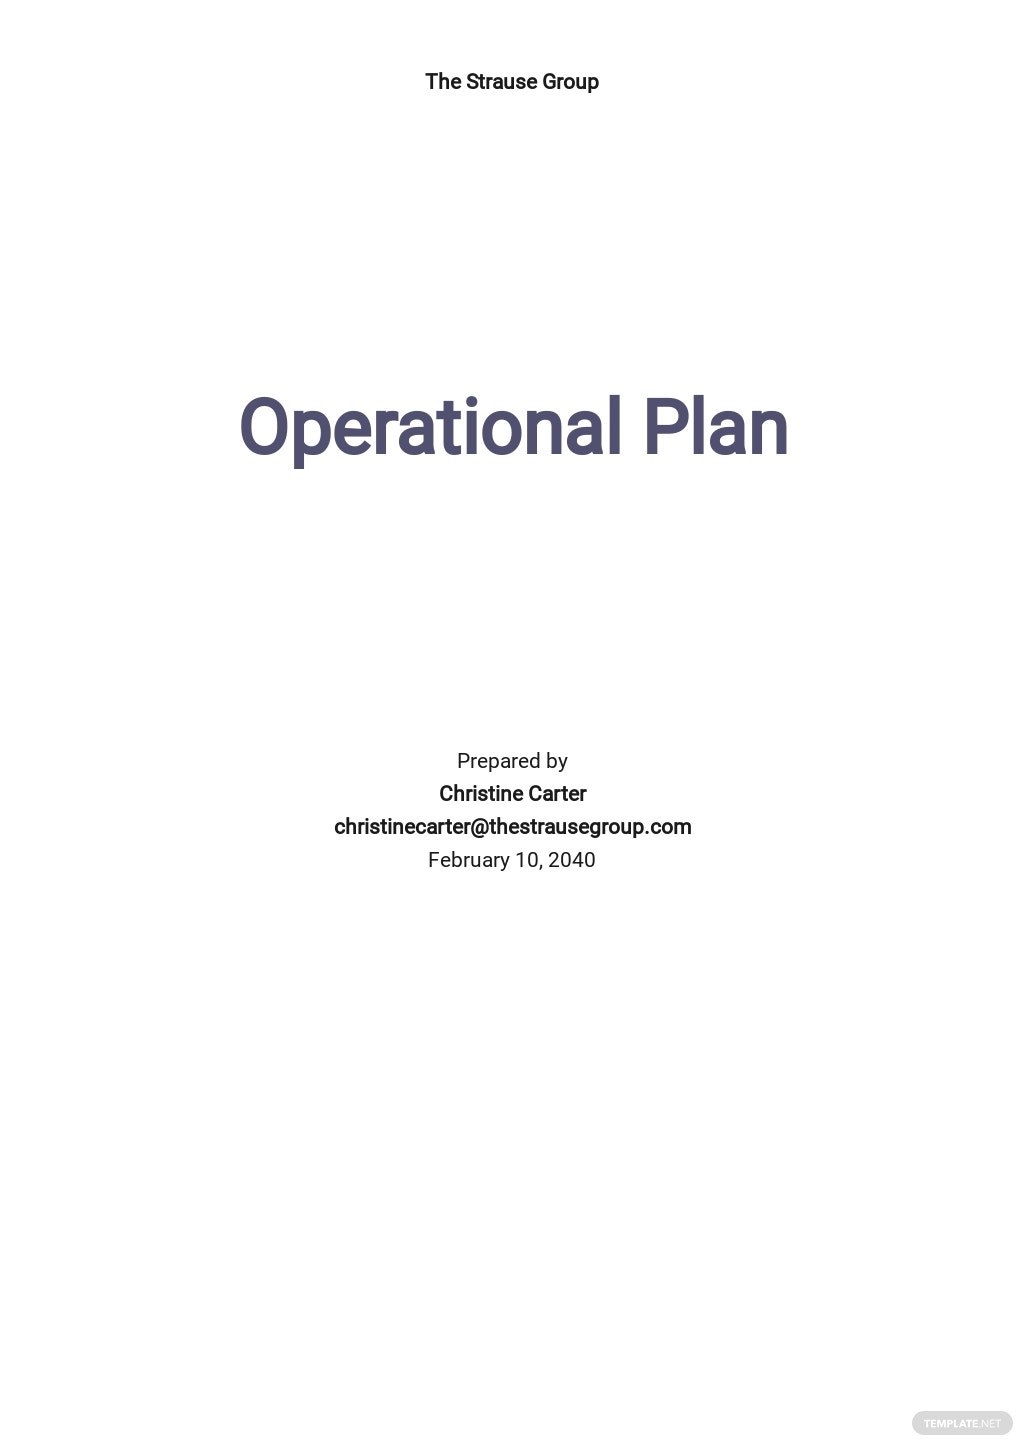 Operational Plan Initiatives Template